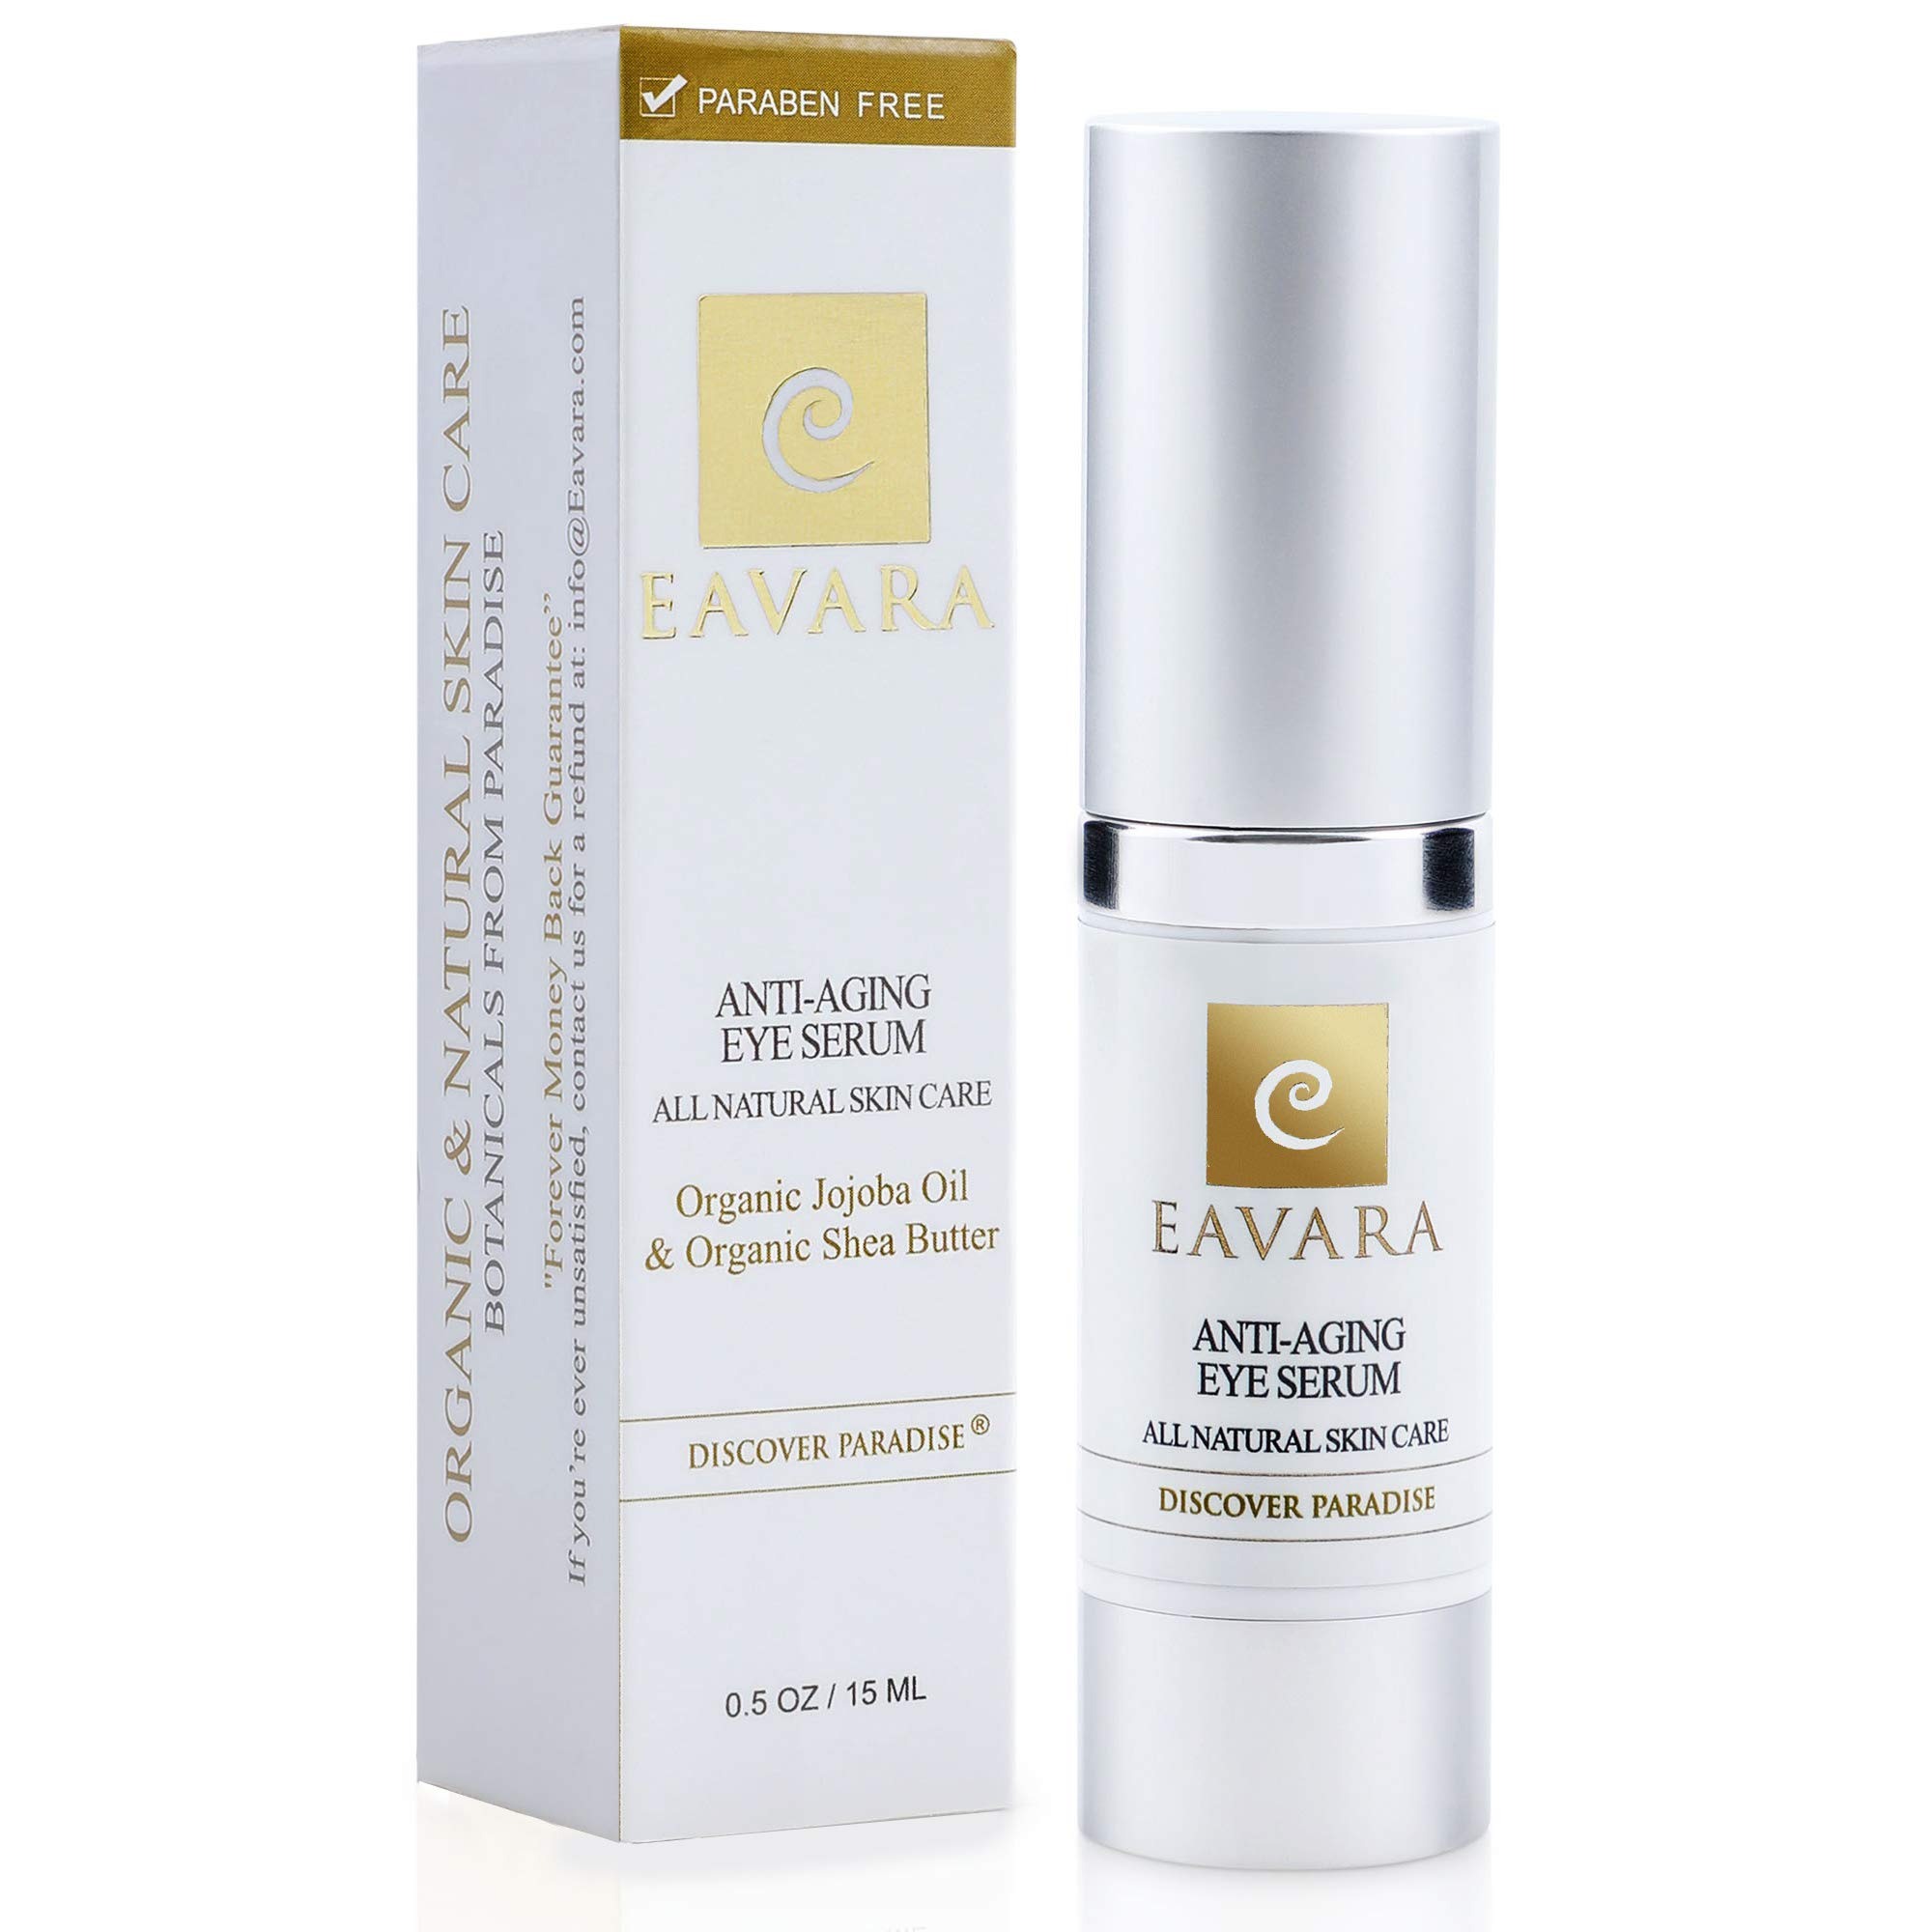 Organic Anti Aging Eye Cream - Award Winning Eye Serum for Dark Circles and Puffiness, Bags, Wrinkles and Fine Lines - Natural Skin Care with Jojoba Oil, Shea Butter, Vitamin E, Hyaluronic Acid by Eavara